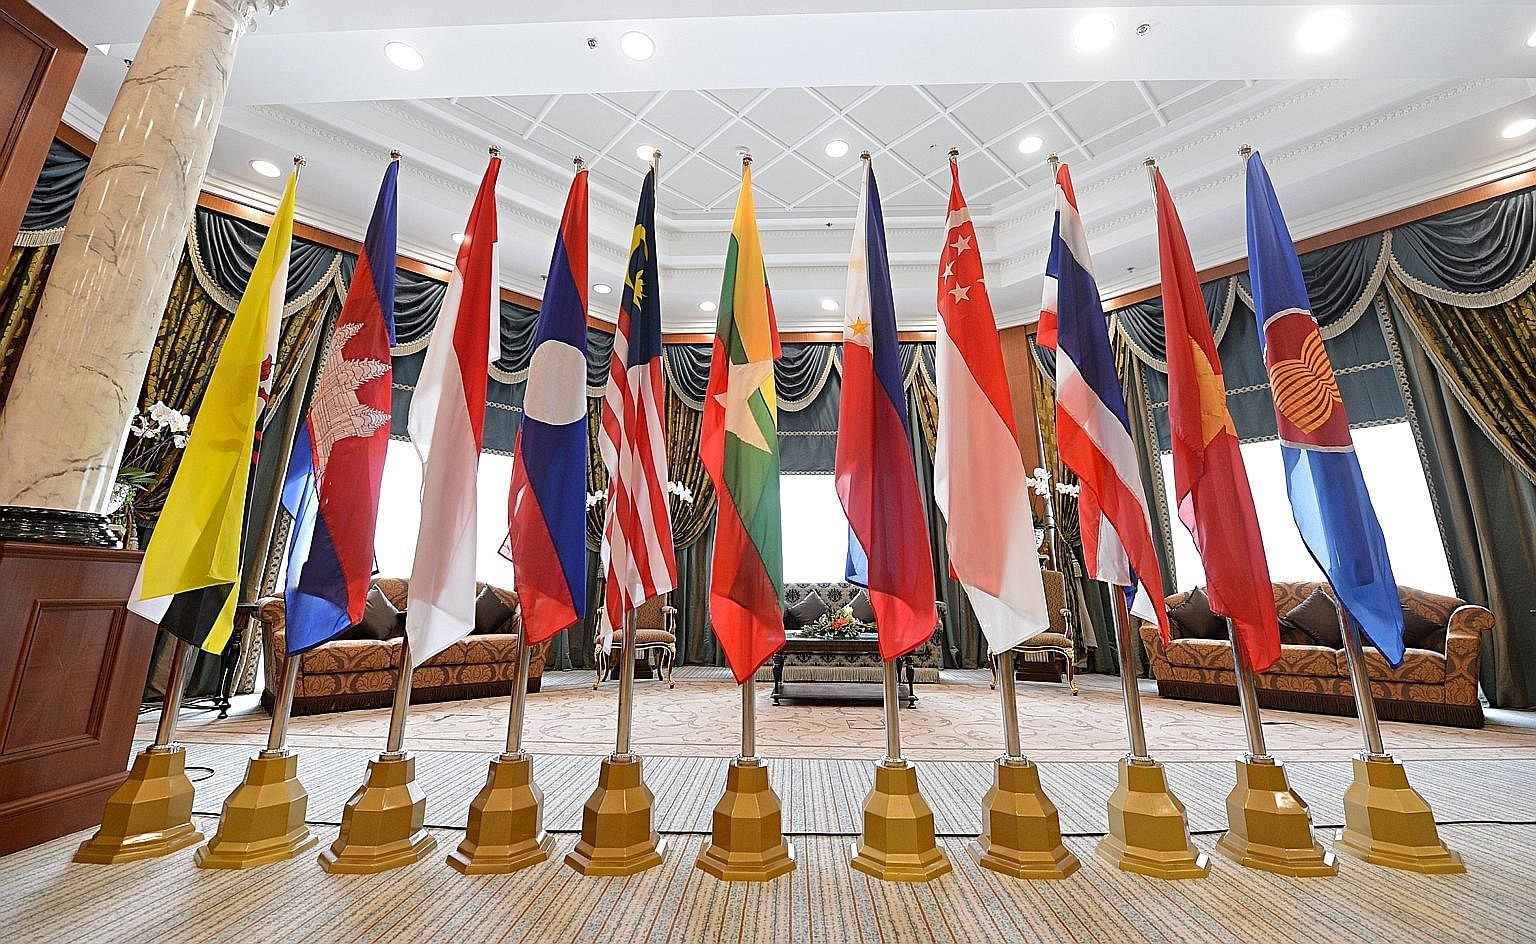 Brexit shows the value of the cautious approach adopted by Asean countries in integration, said the writer. The idea is to encourage trade and investment in the region, lower business costs and hence improve people's lives.